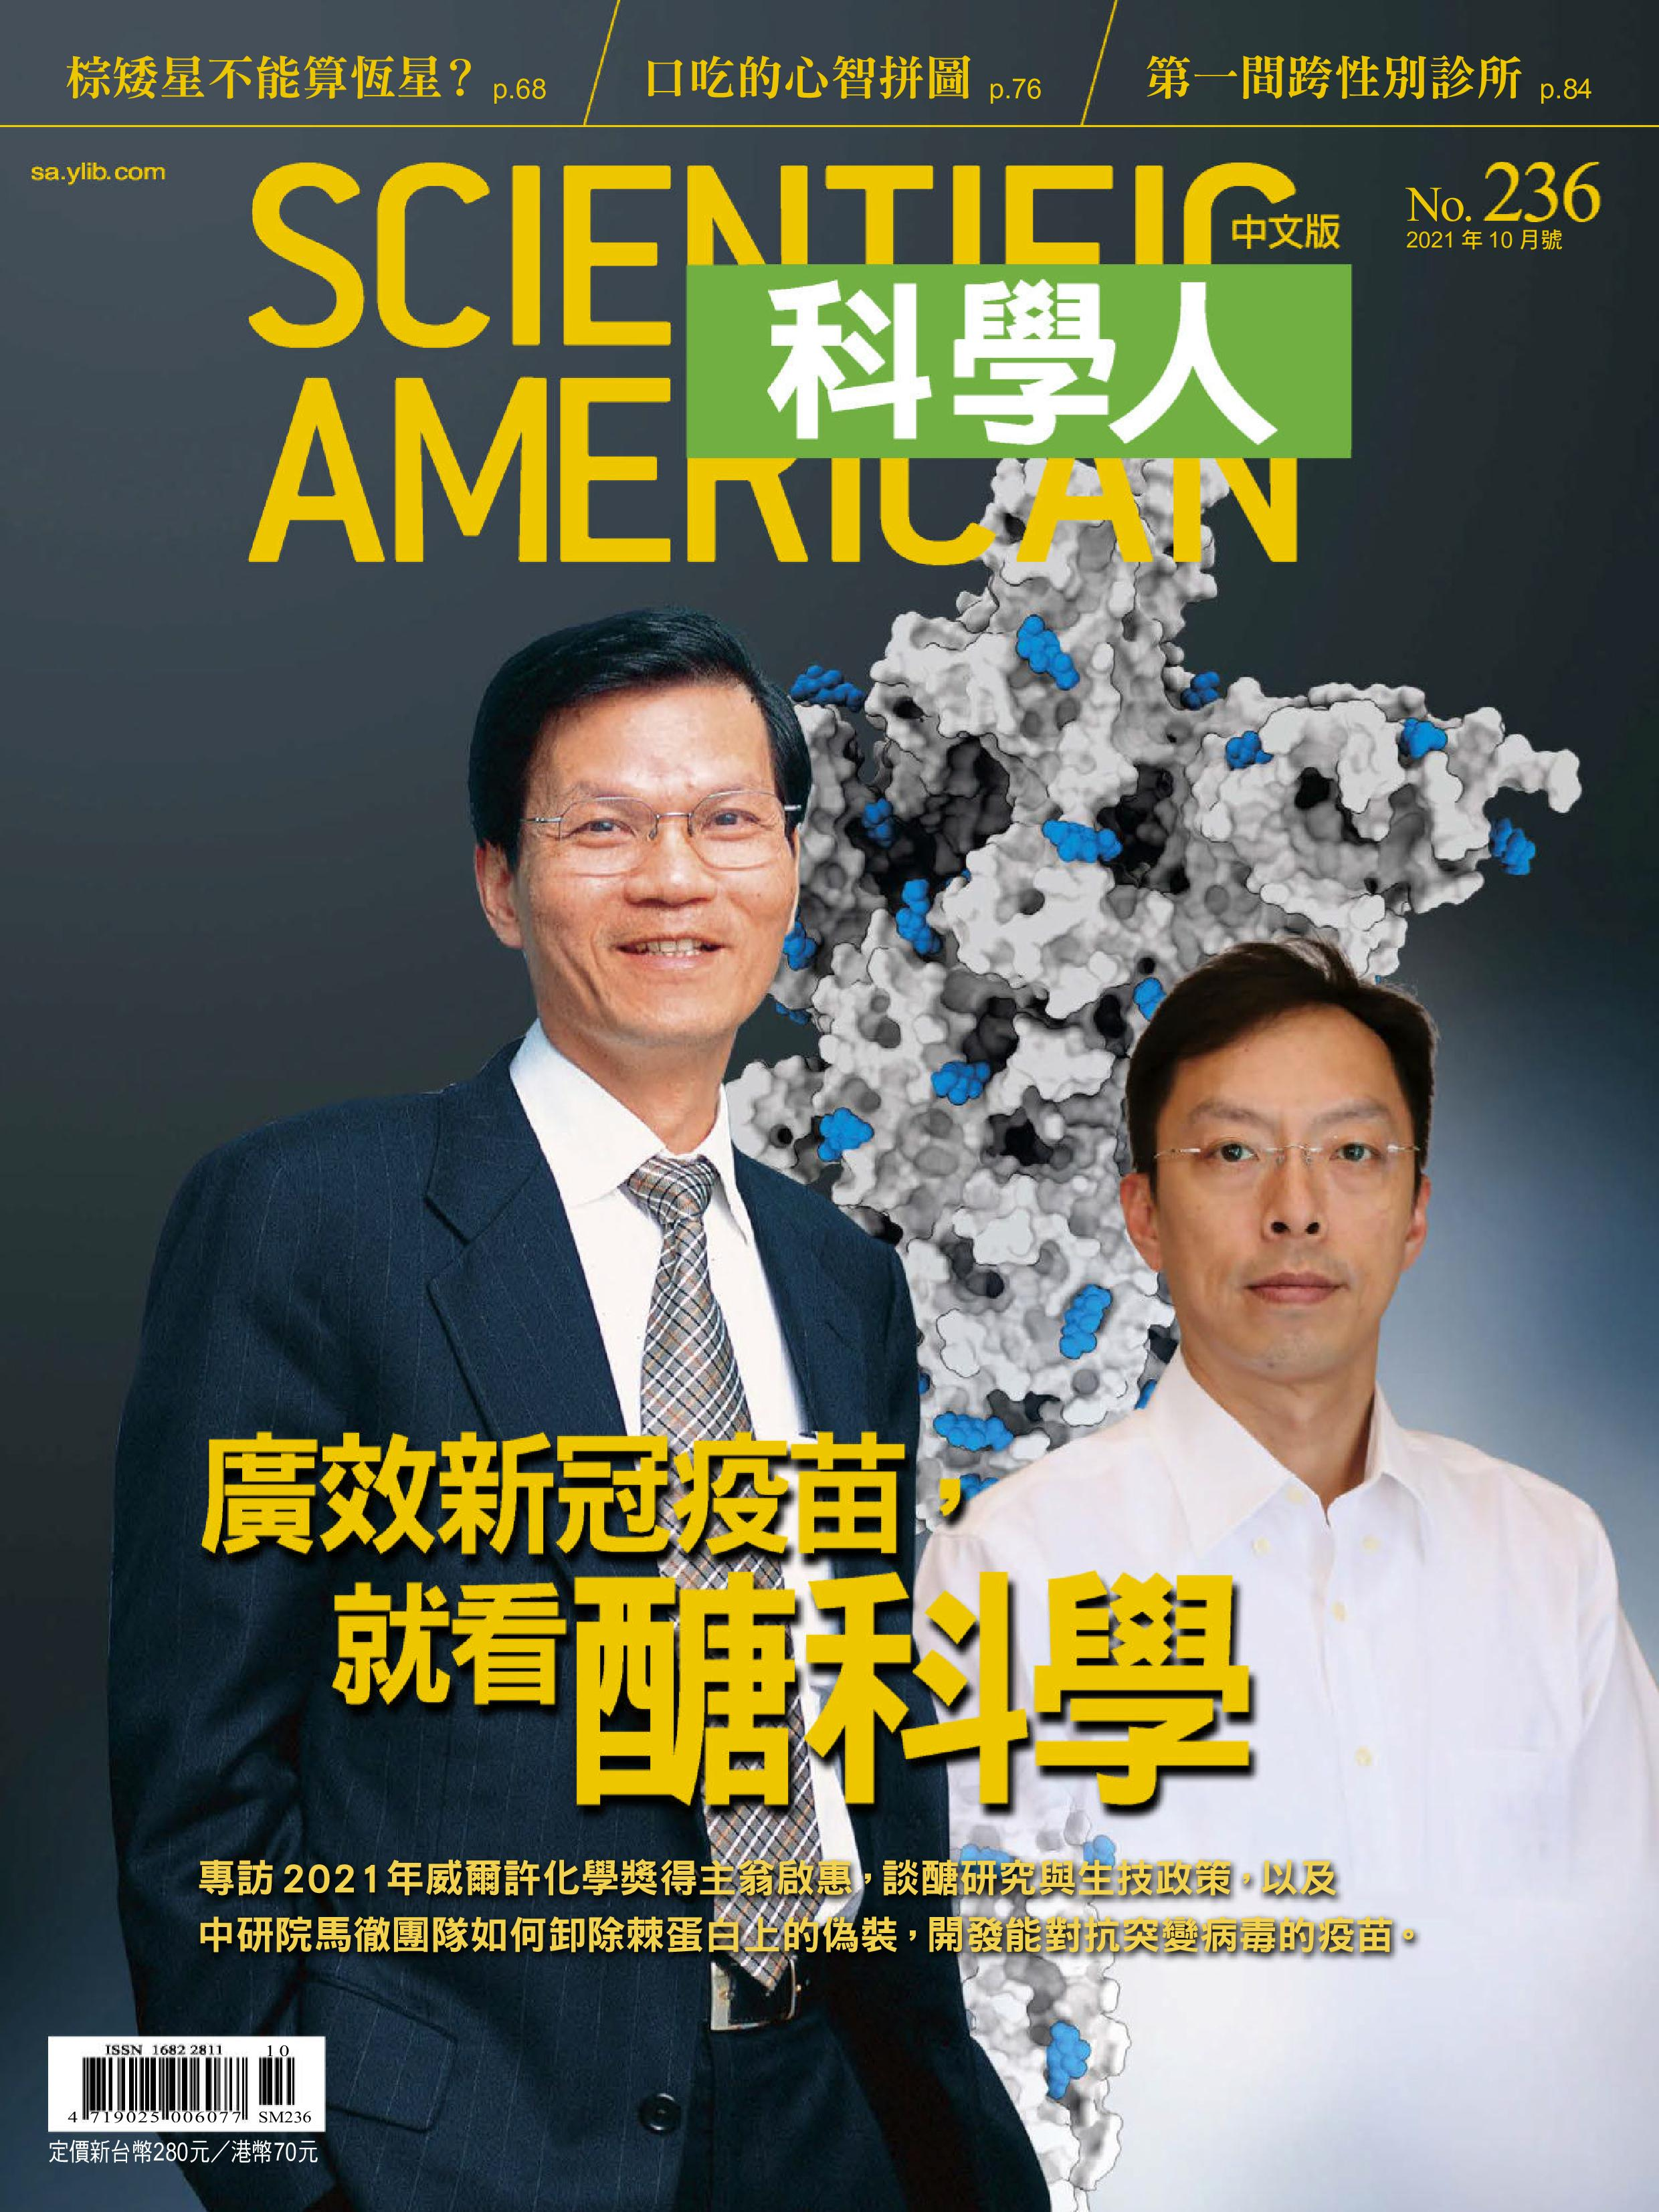 Scientific American Traditional Chinese Edition 科學人中文版 - 十月 2021